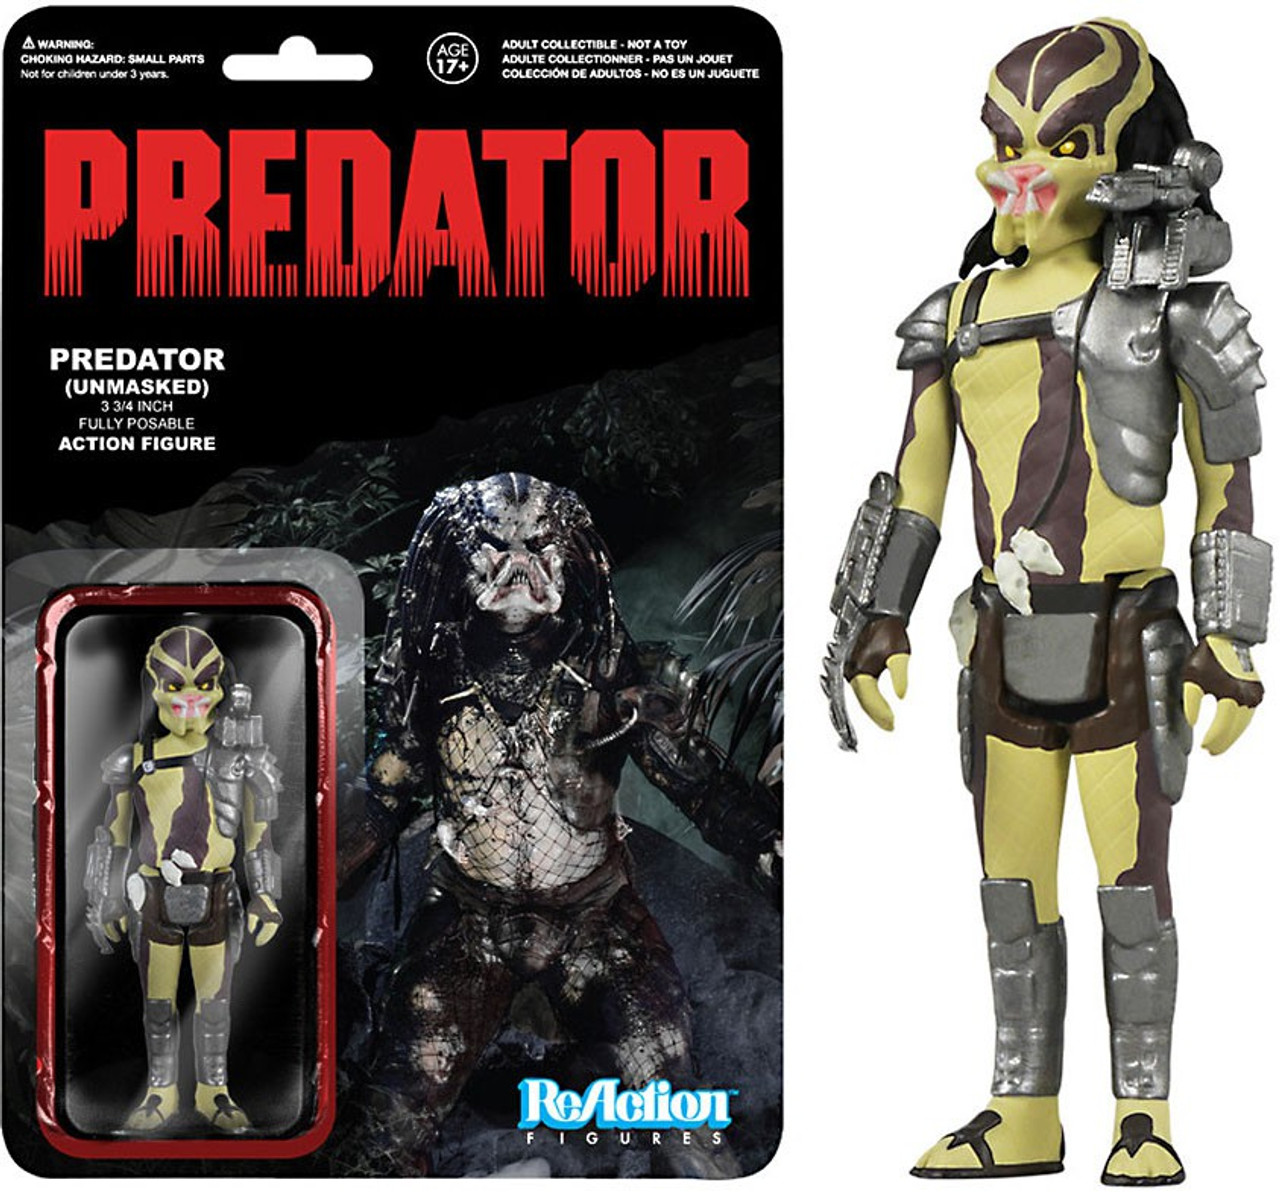 Arcade Version Funko Reaction Figure Predator Figure